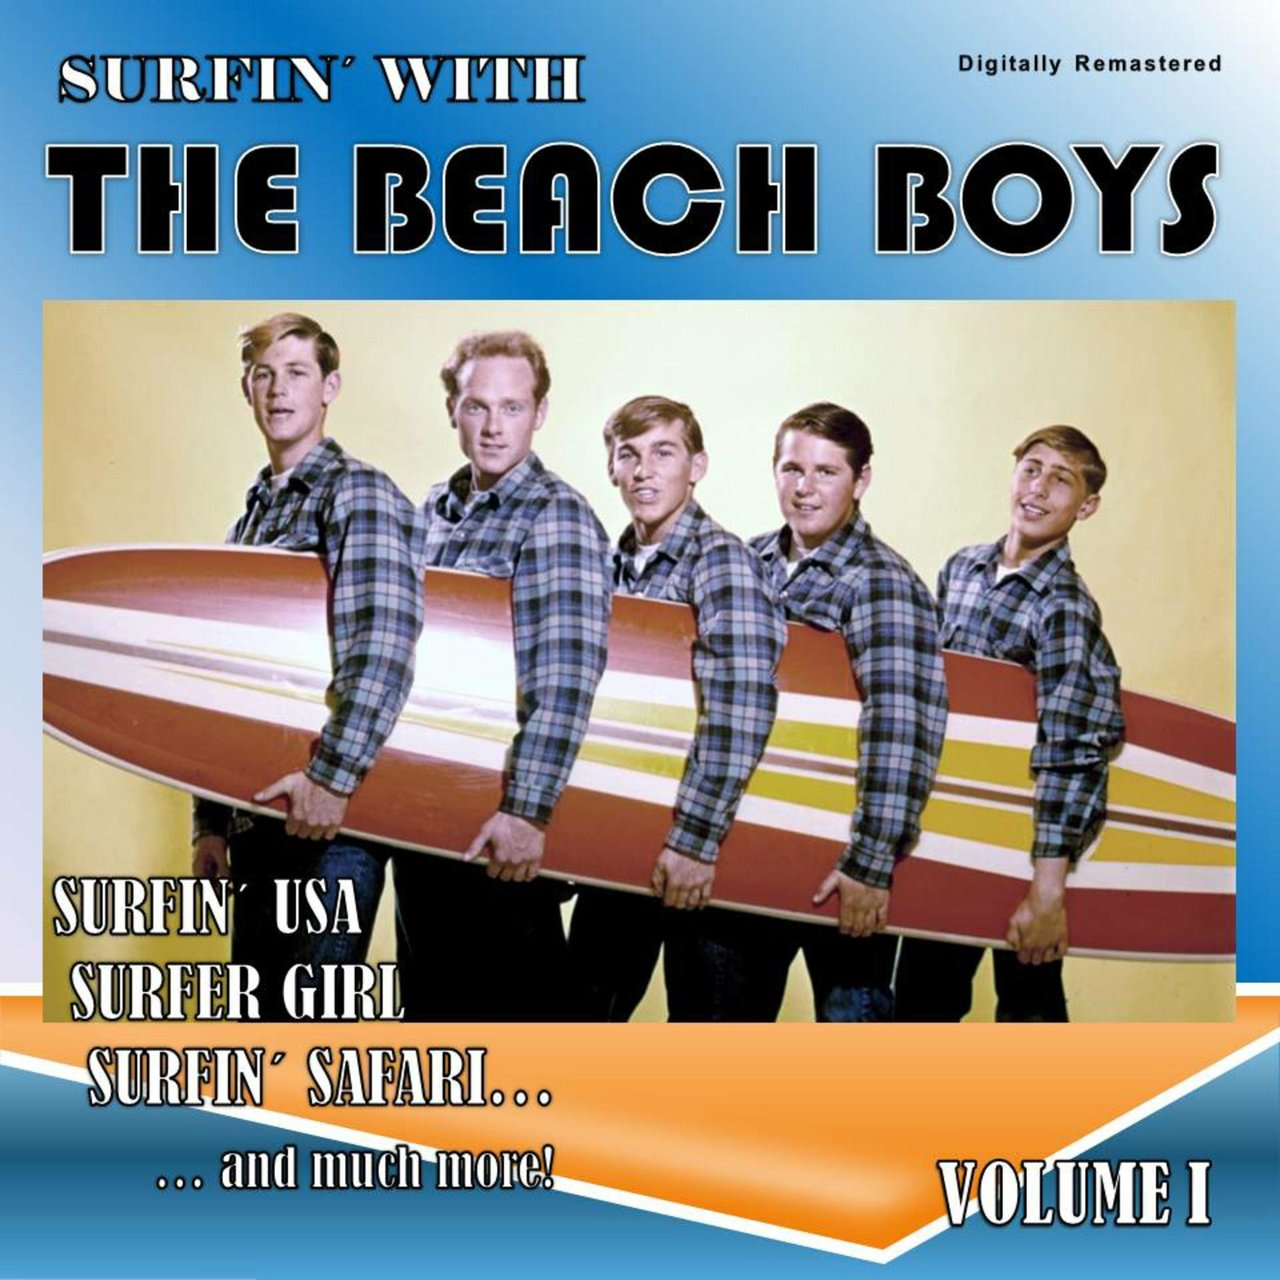 Surfin' with the Beach Boys, Vol. 1 (Digitally Remastered)